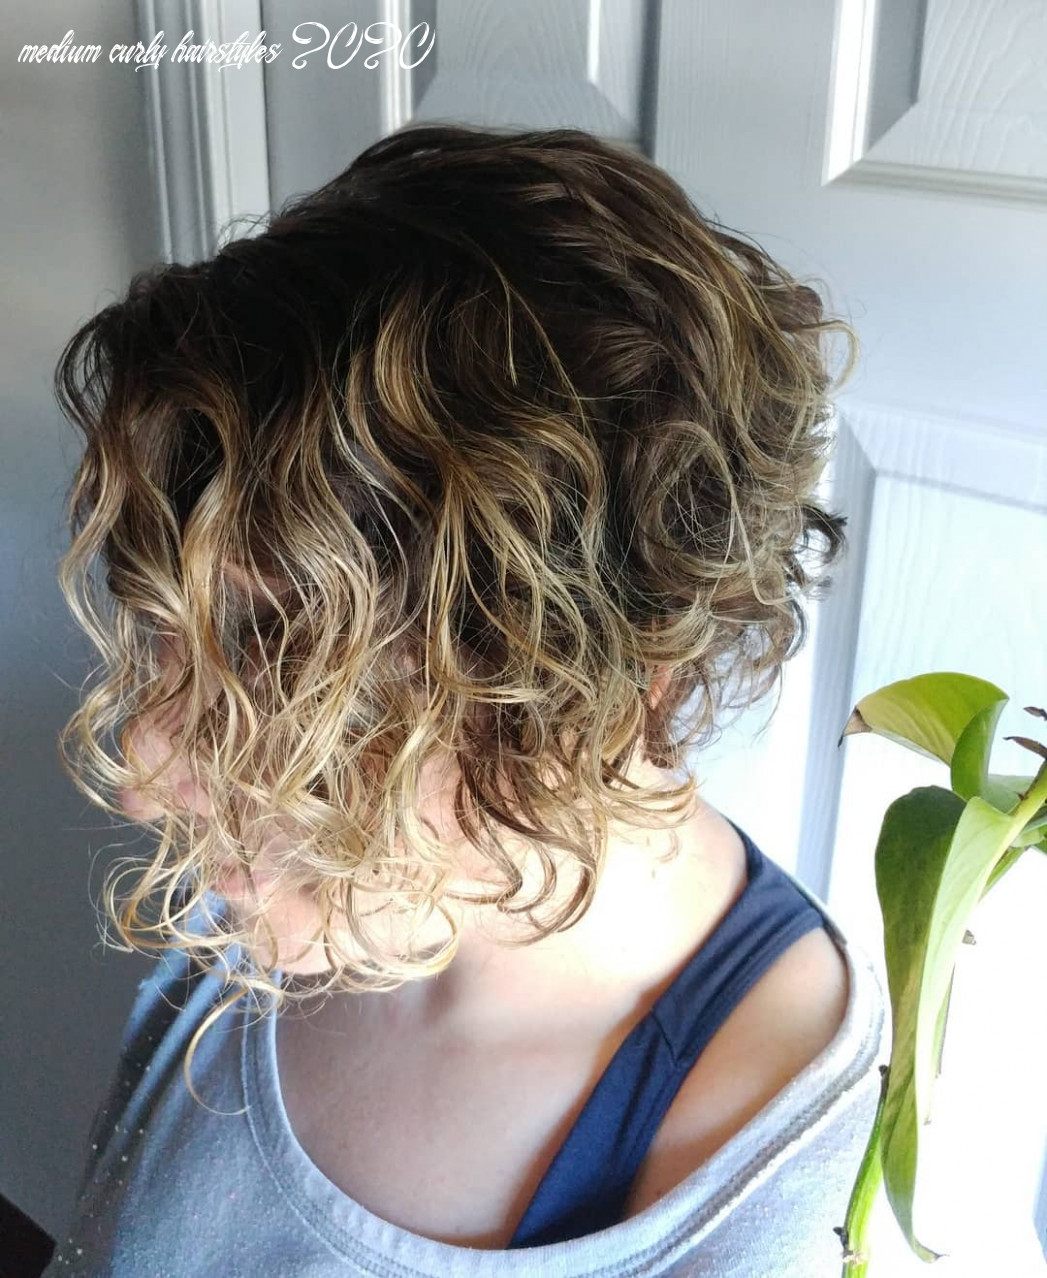 Long curly hairstyles 10 medium curly hairstyles 2020